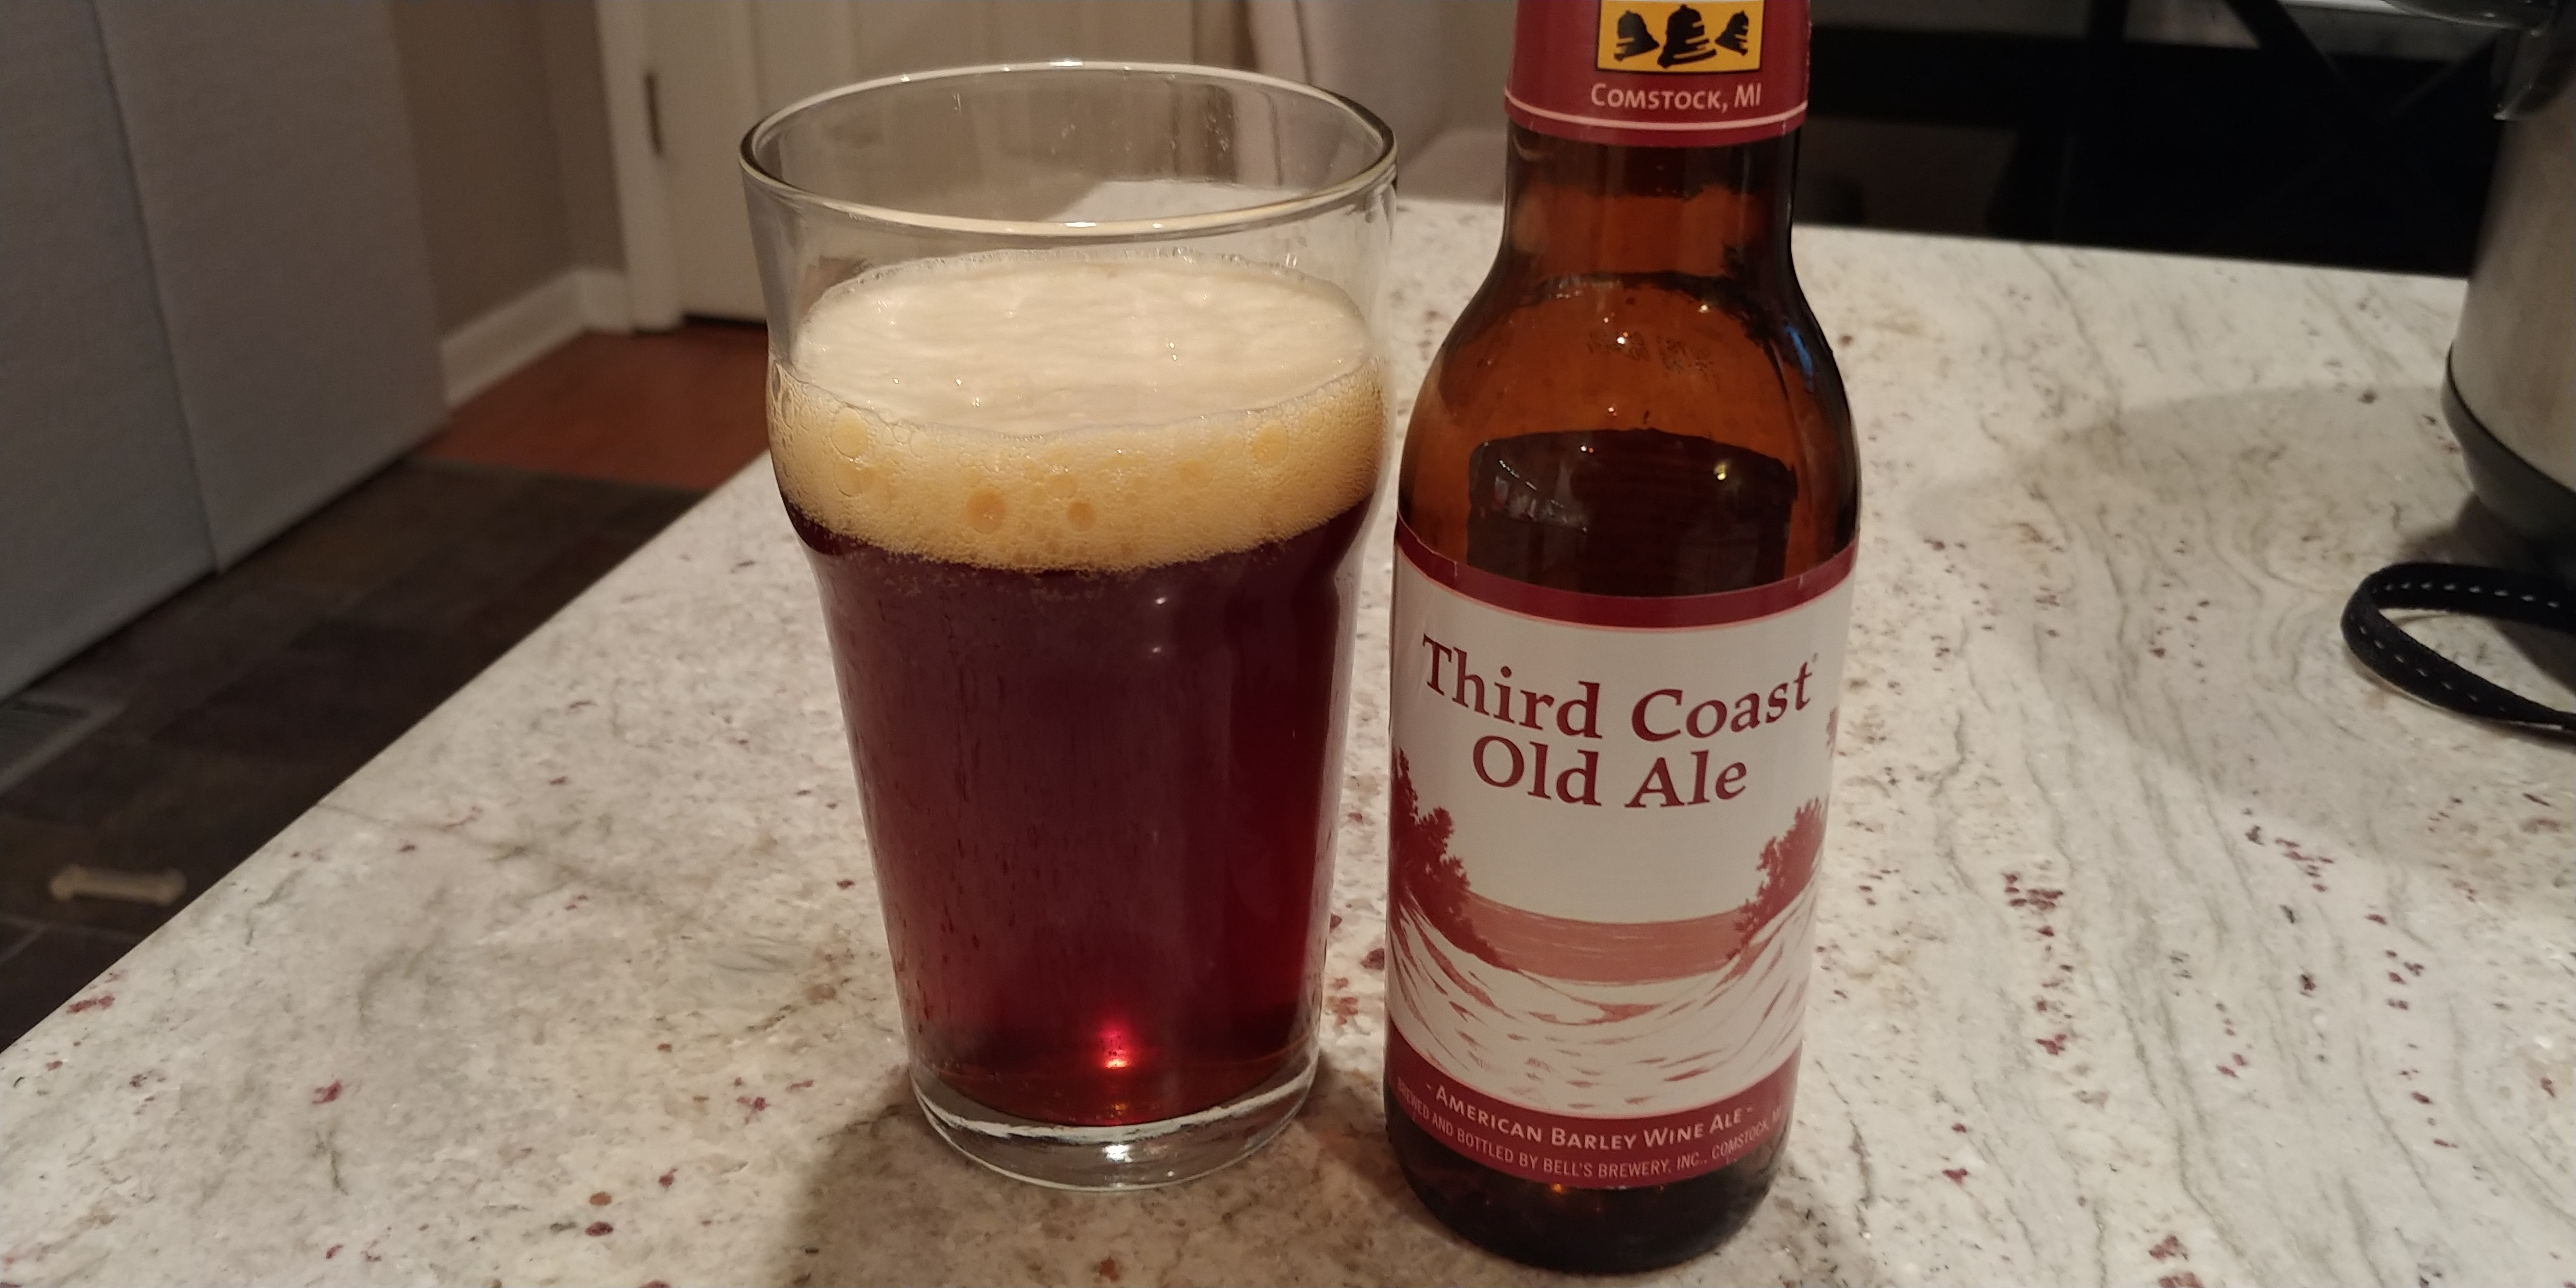 Bell's Third Coast Old Ale